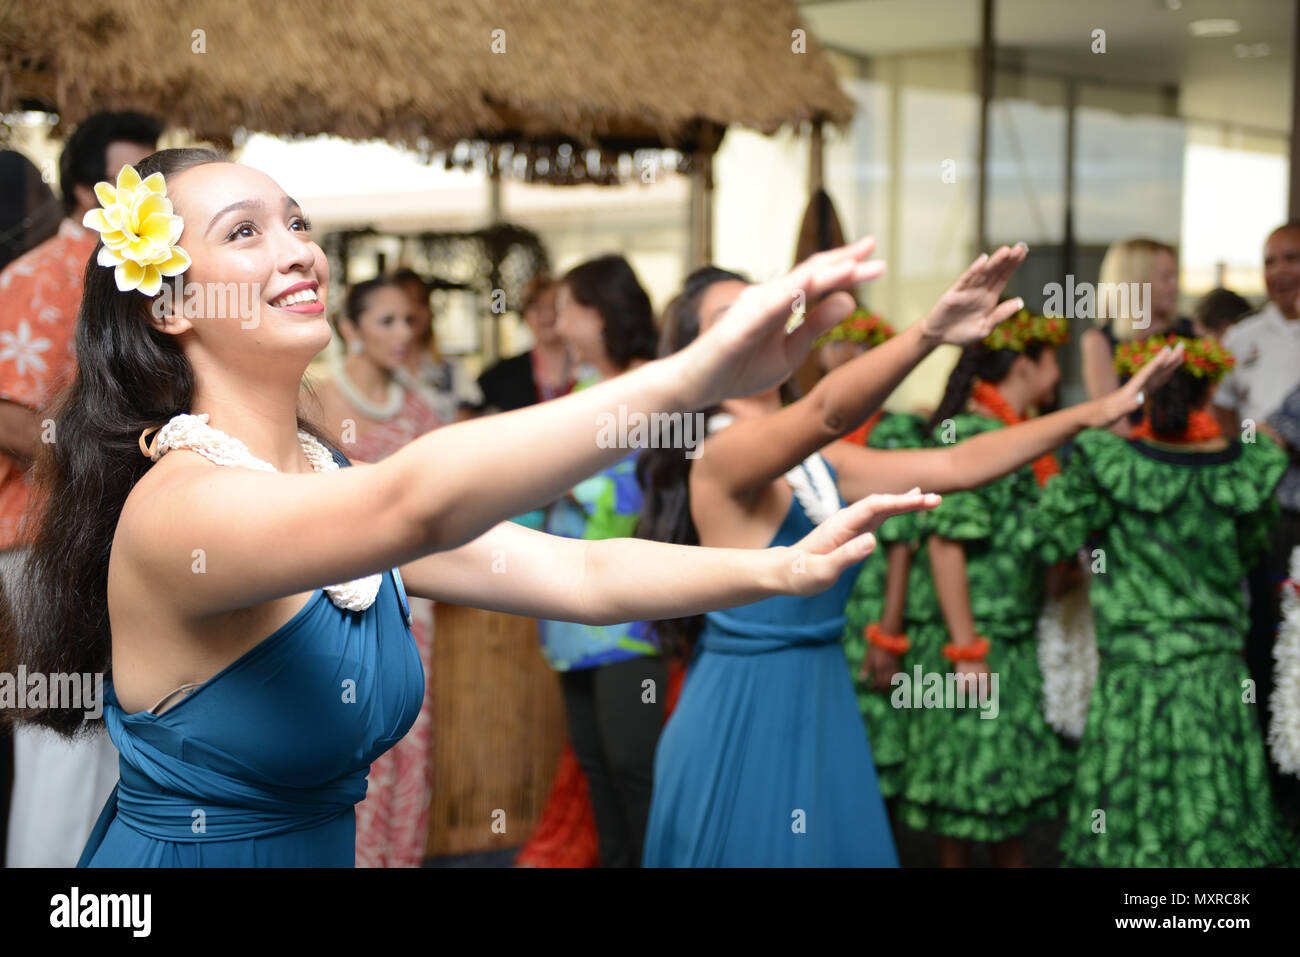 hula dancers provide entertainment prior to the arrival of an